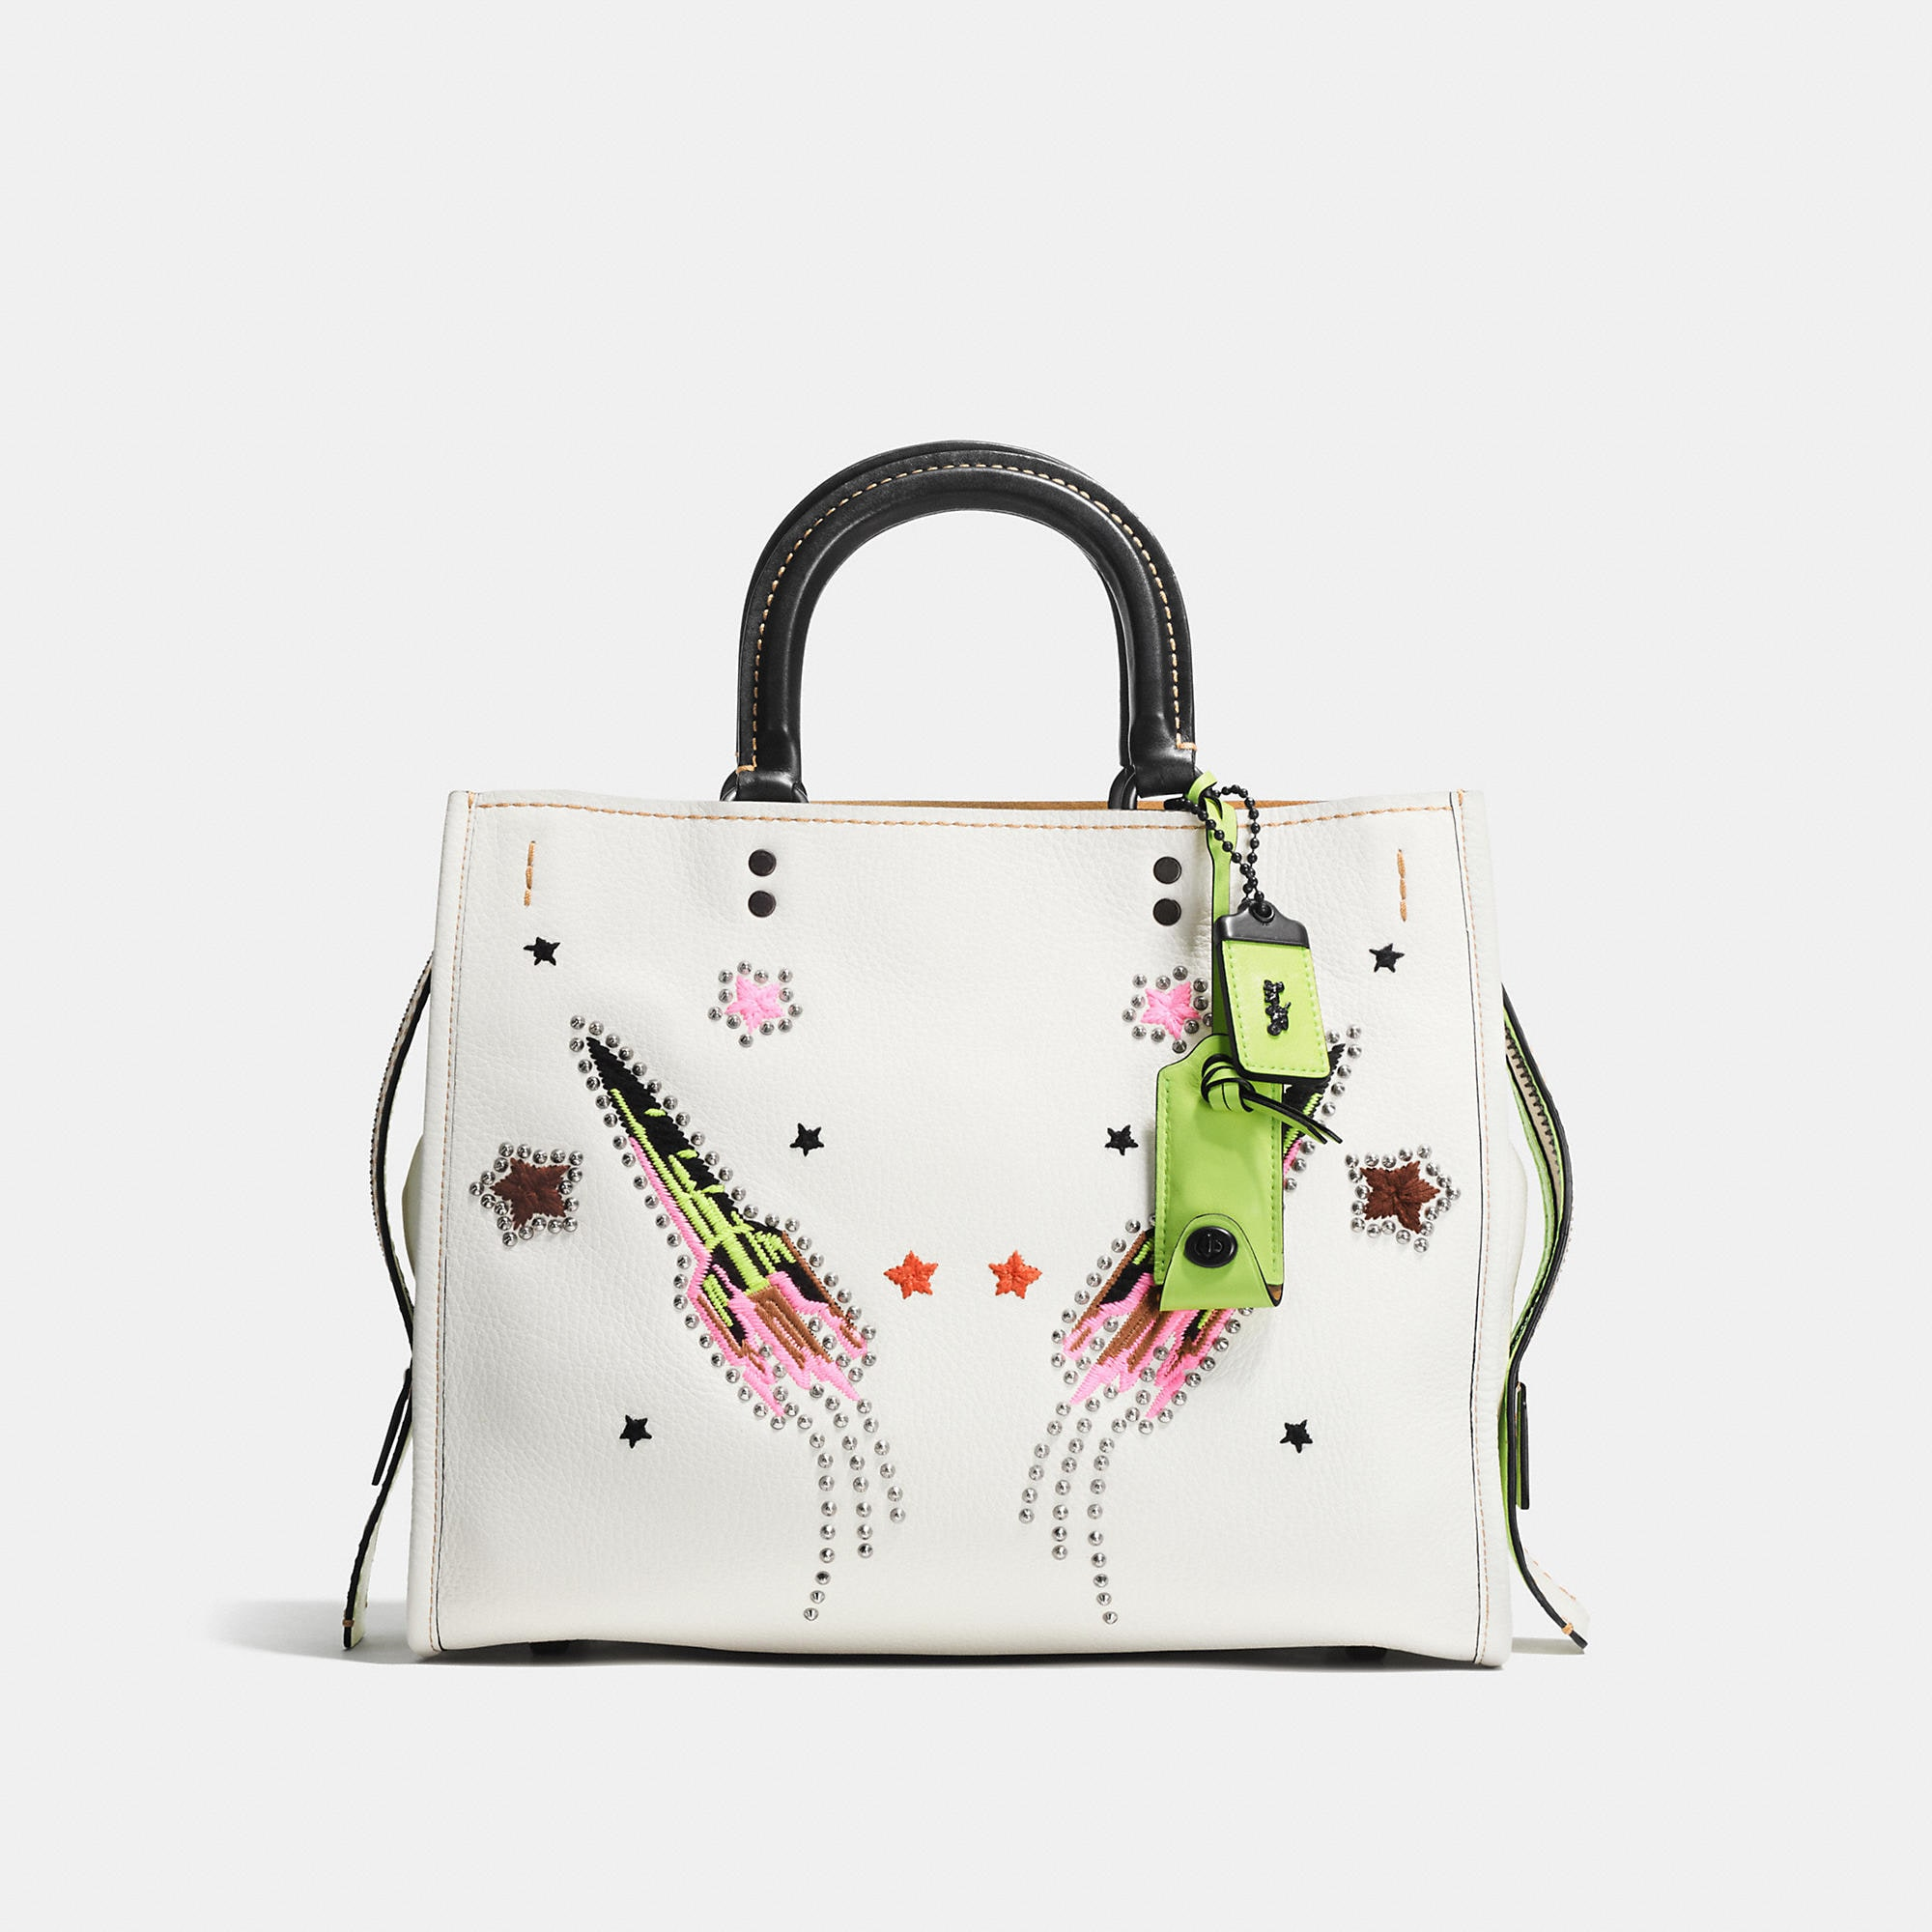 Coach Rogue In Glovetanned Leather With Rocket Embellishment